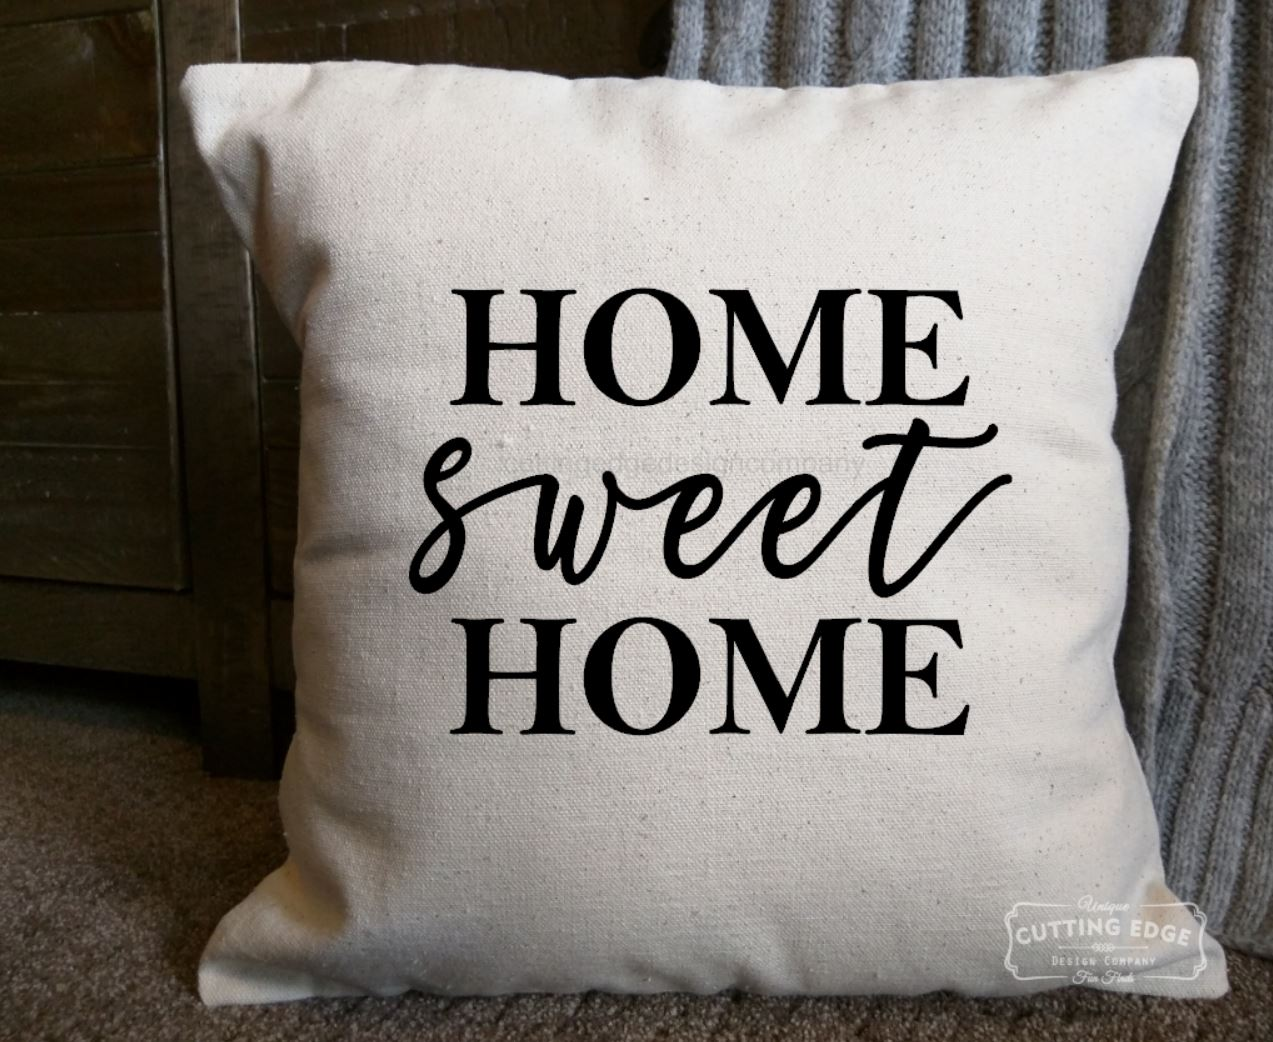 Home Sweet Home Cotton Canvas Natural Pillow   Throw Pillow   Couch Pillow    Graphic Pillow